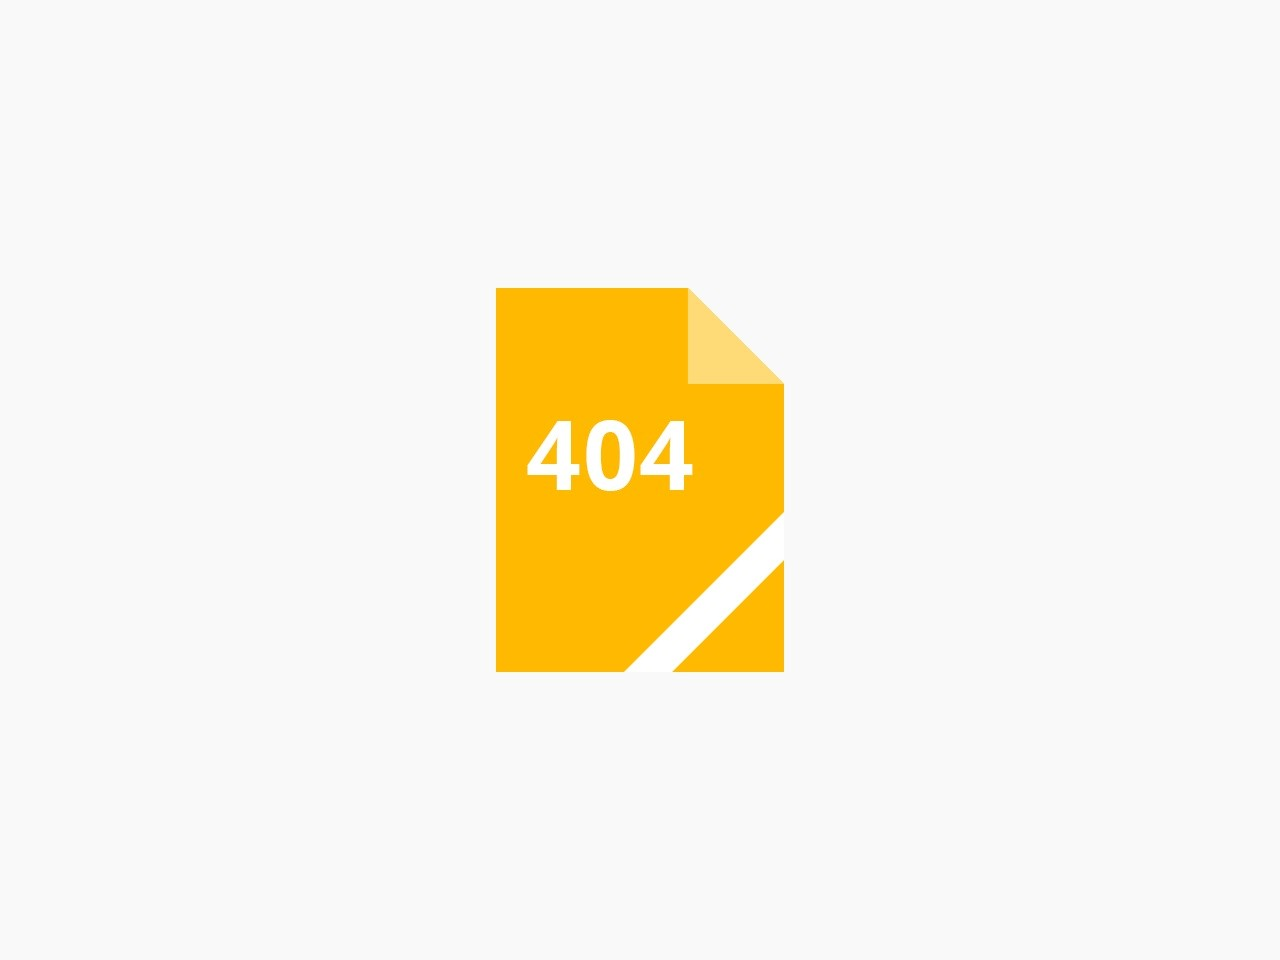 Alexander Zapata Lenis of Mexico Appointed International Director of ISACA